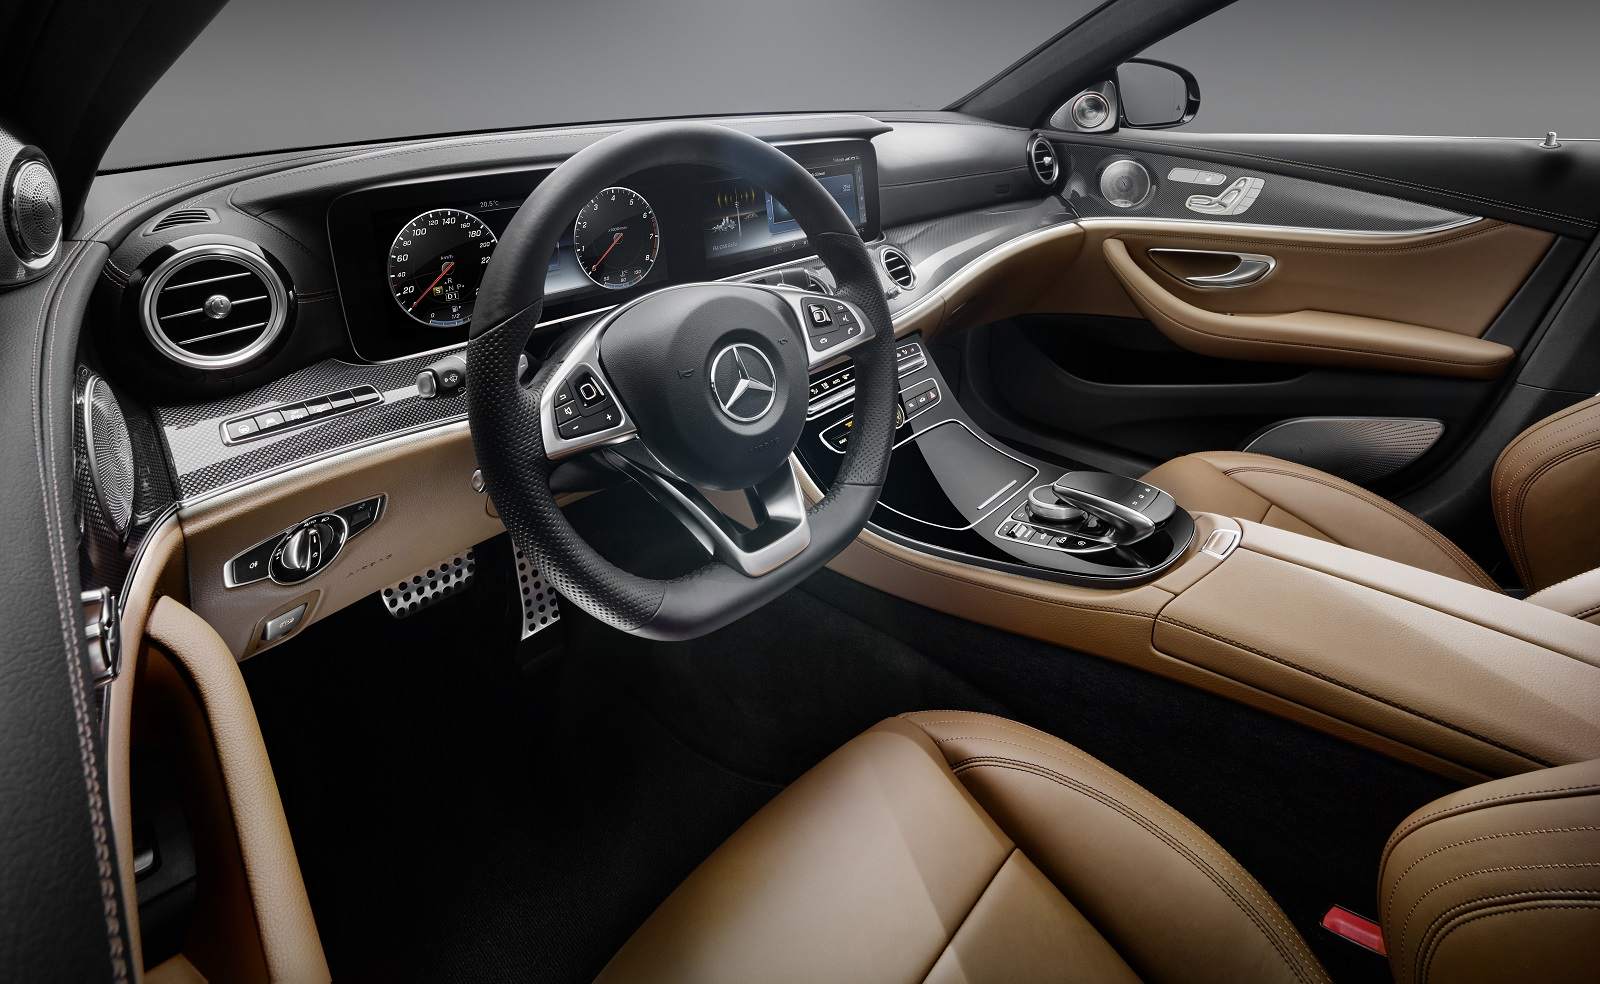 2017 mercedes benz e class interior revealed all glass. Black Bedroom Furniture Sets. Home Design Ideas